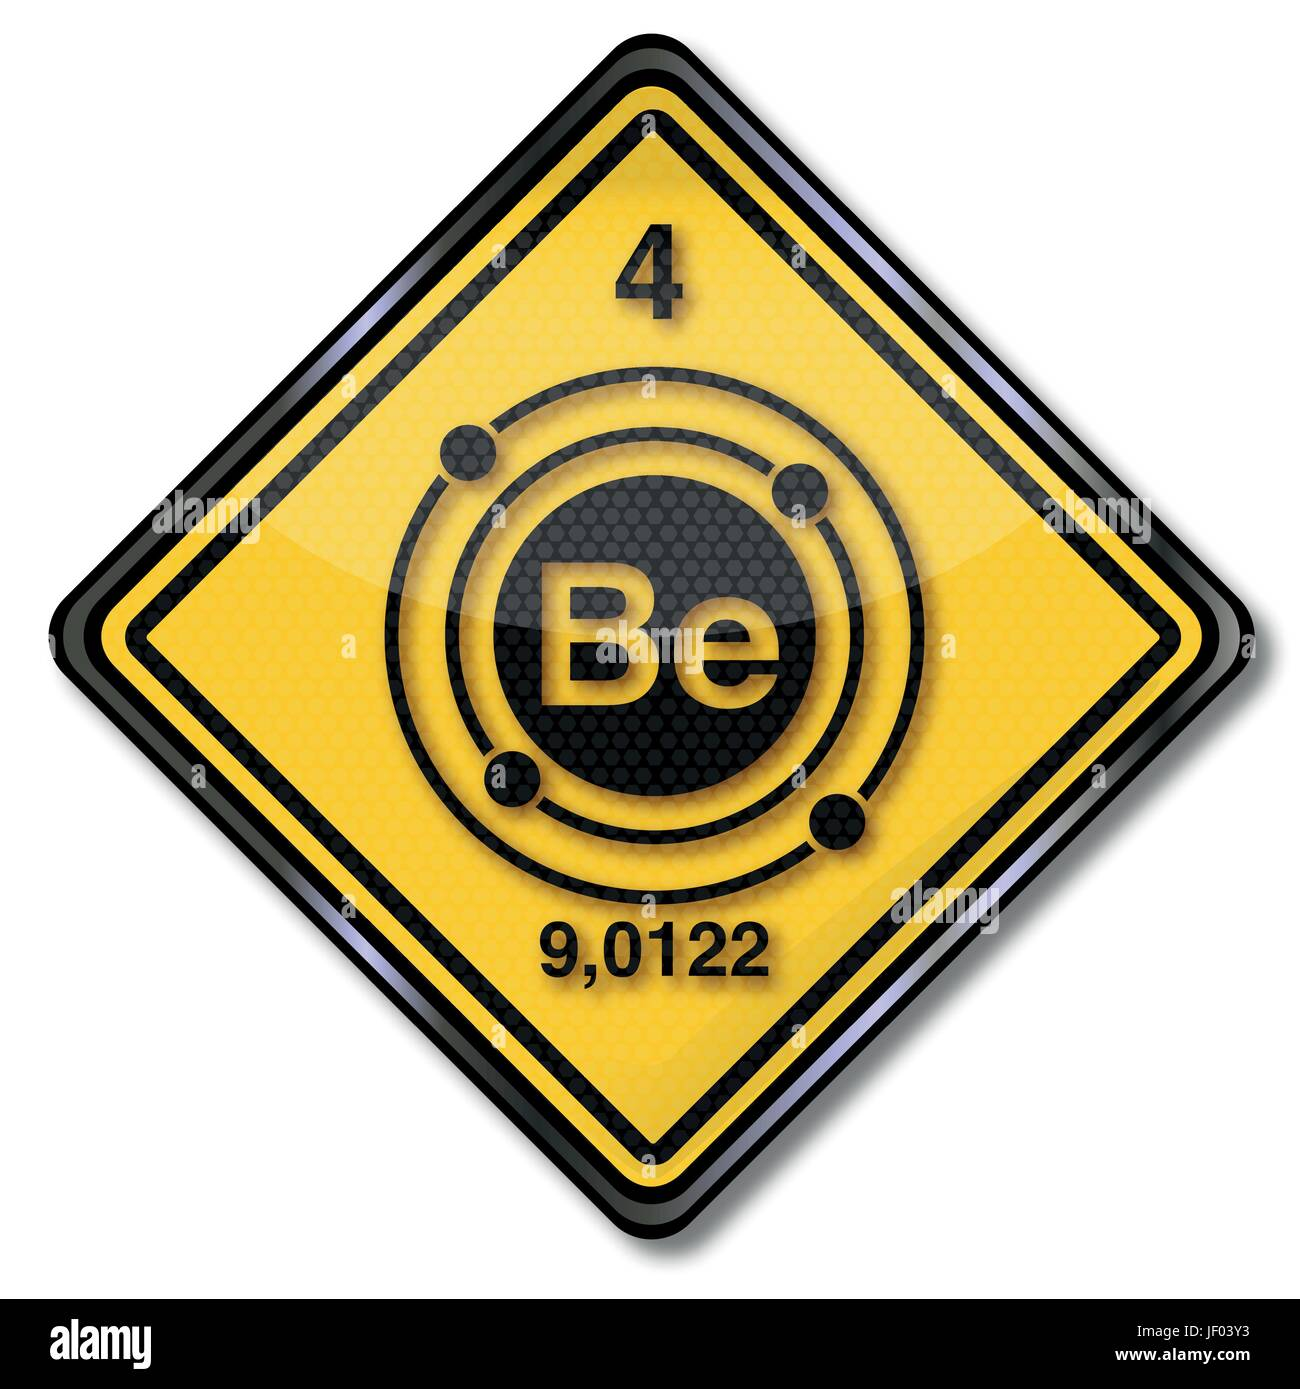 Element chemistry beryllium pictogram symbol pictograph element chemistry beryllium pictogram symbol pictograph trade symbol biocorpaavc Images